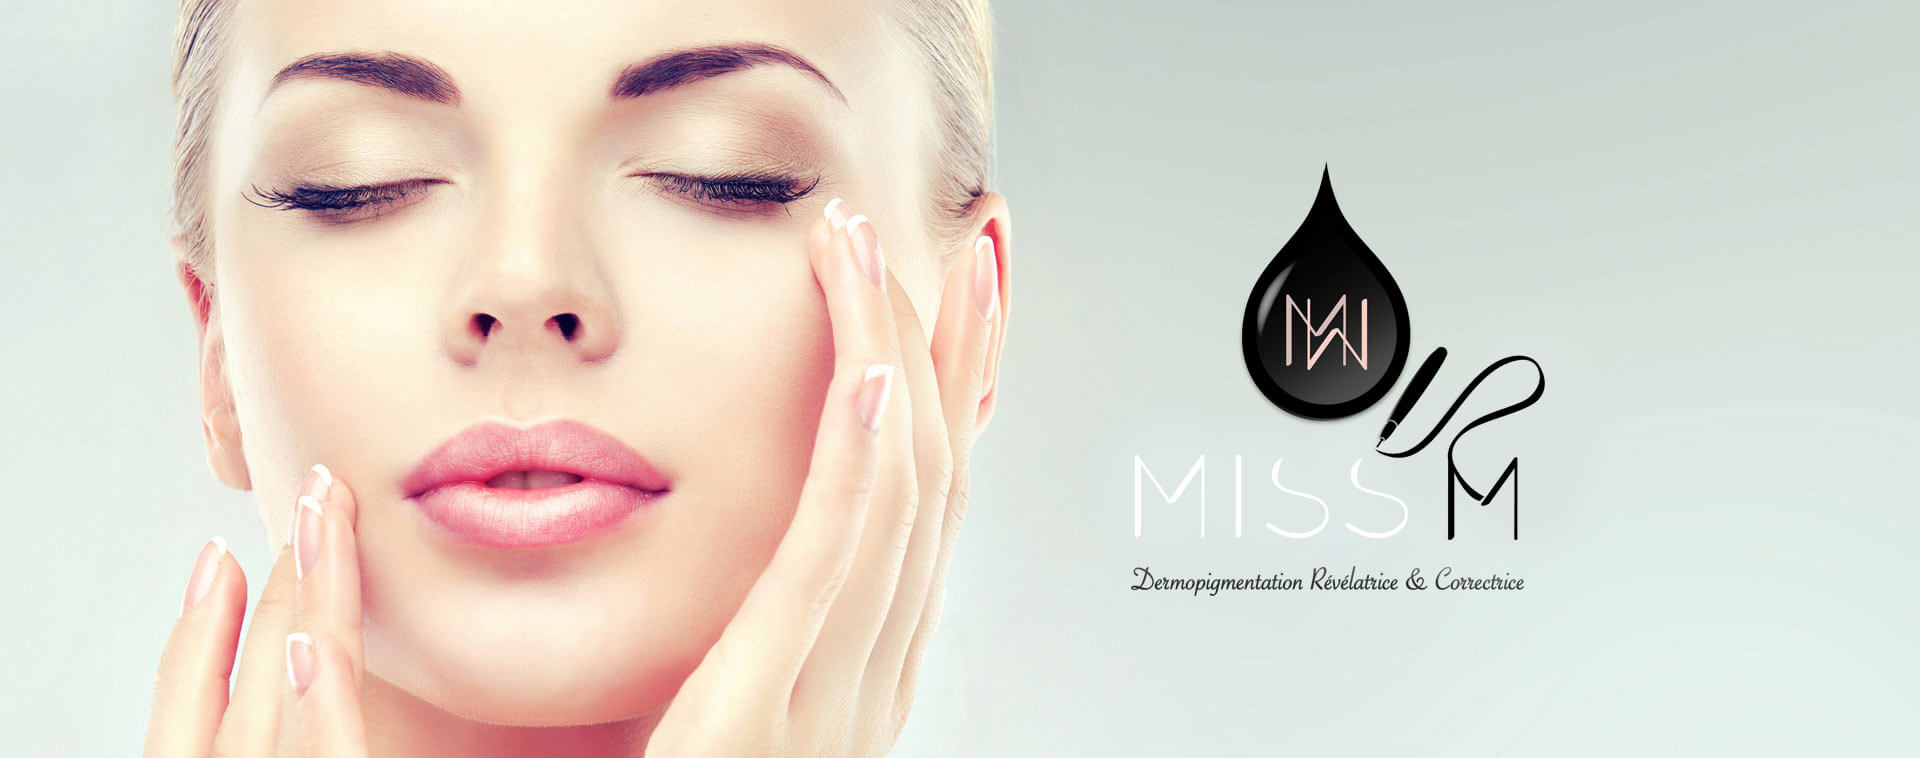 Miss M maquillage permament dermopigmentation Marseille